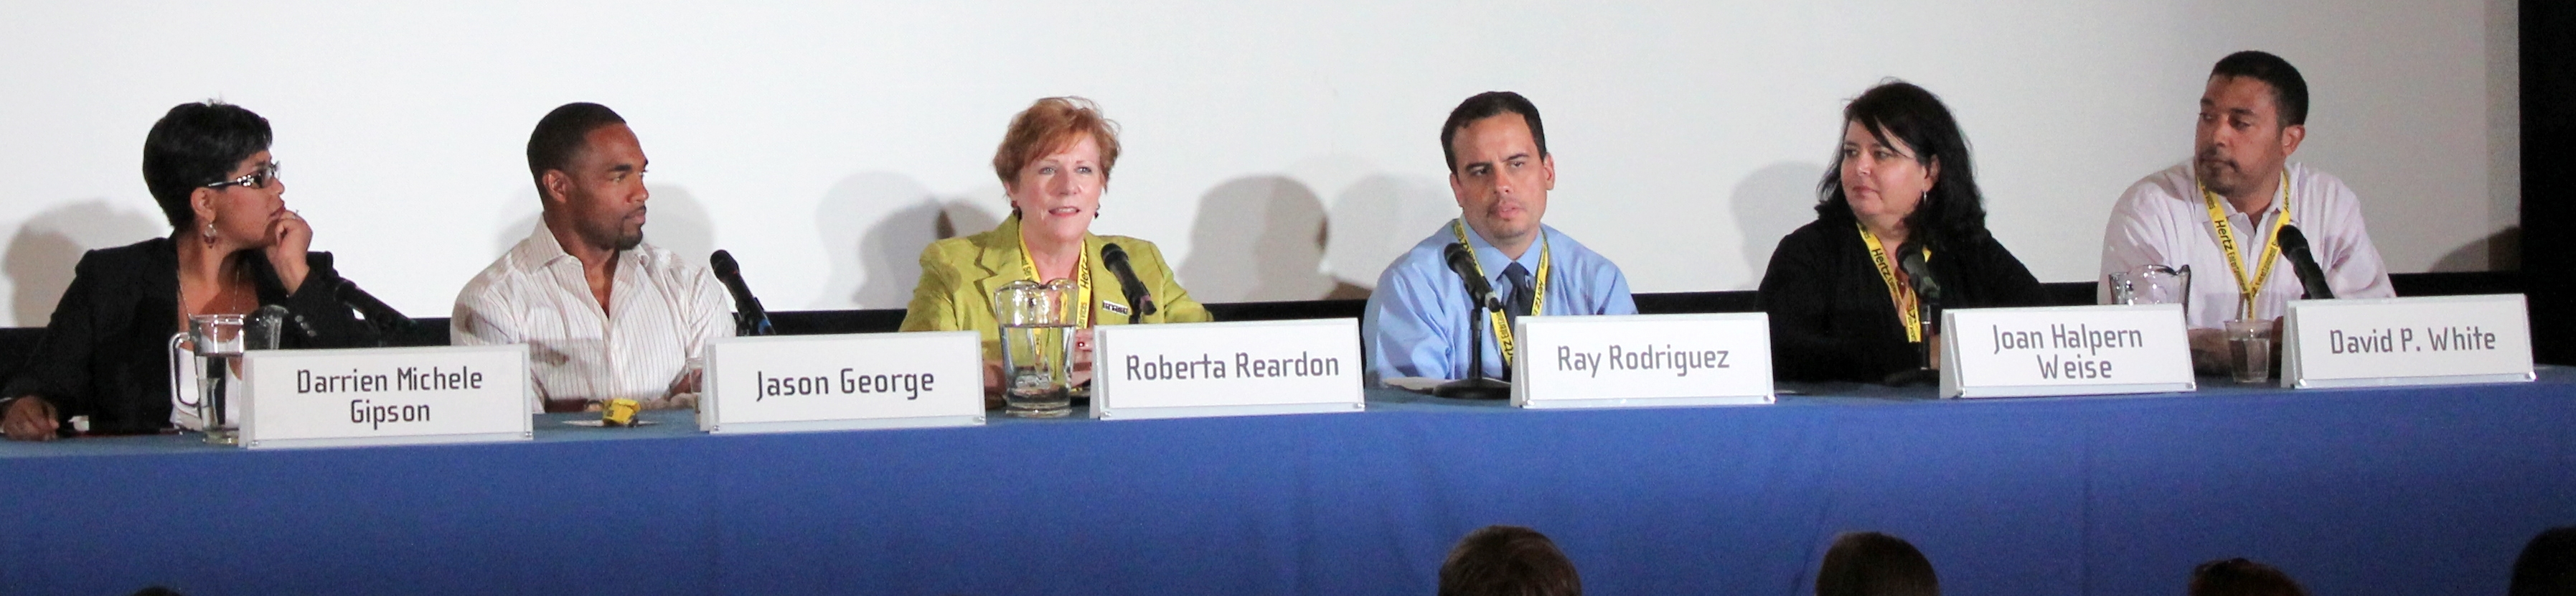 SAG-AFTRA panel at Produced By Conference H 2012